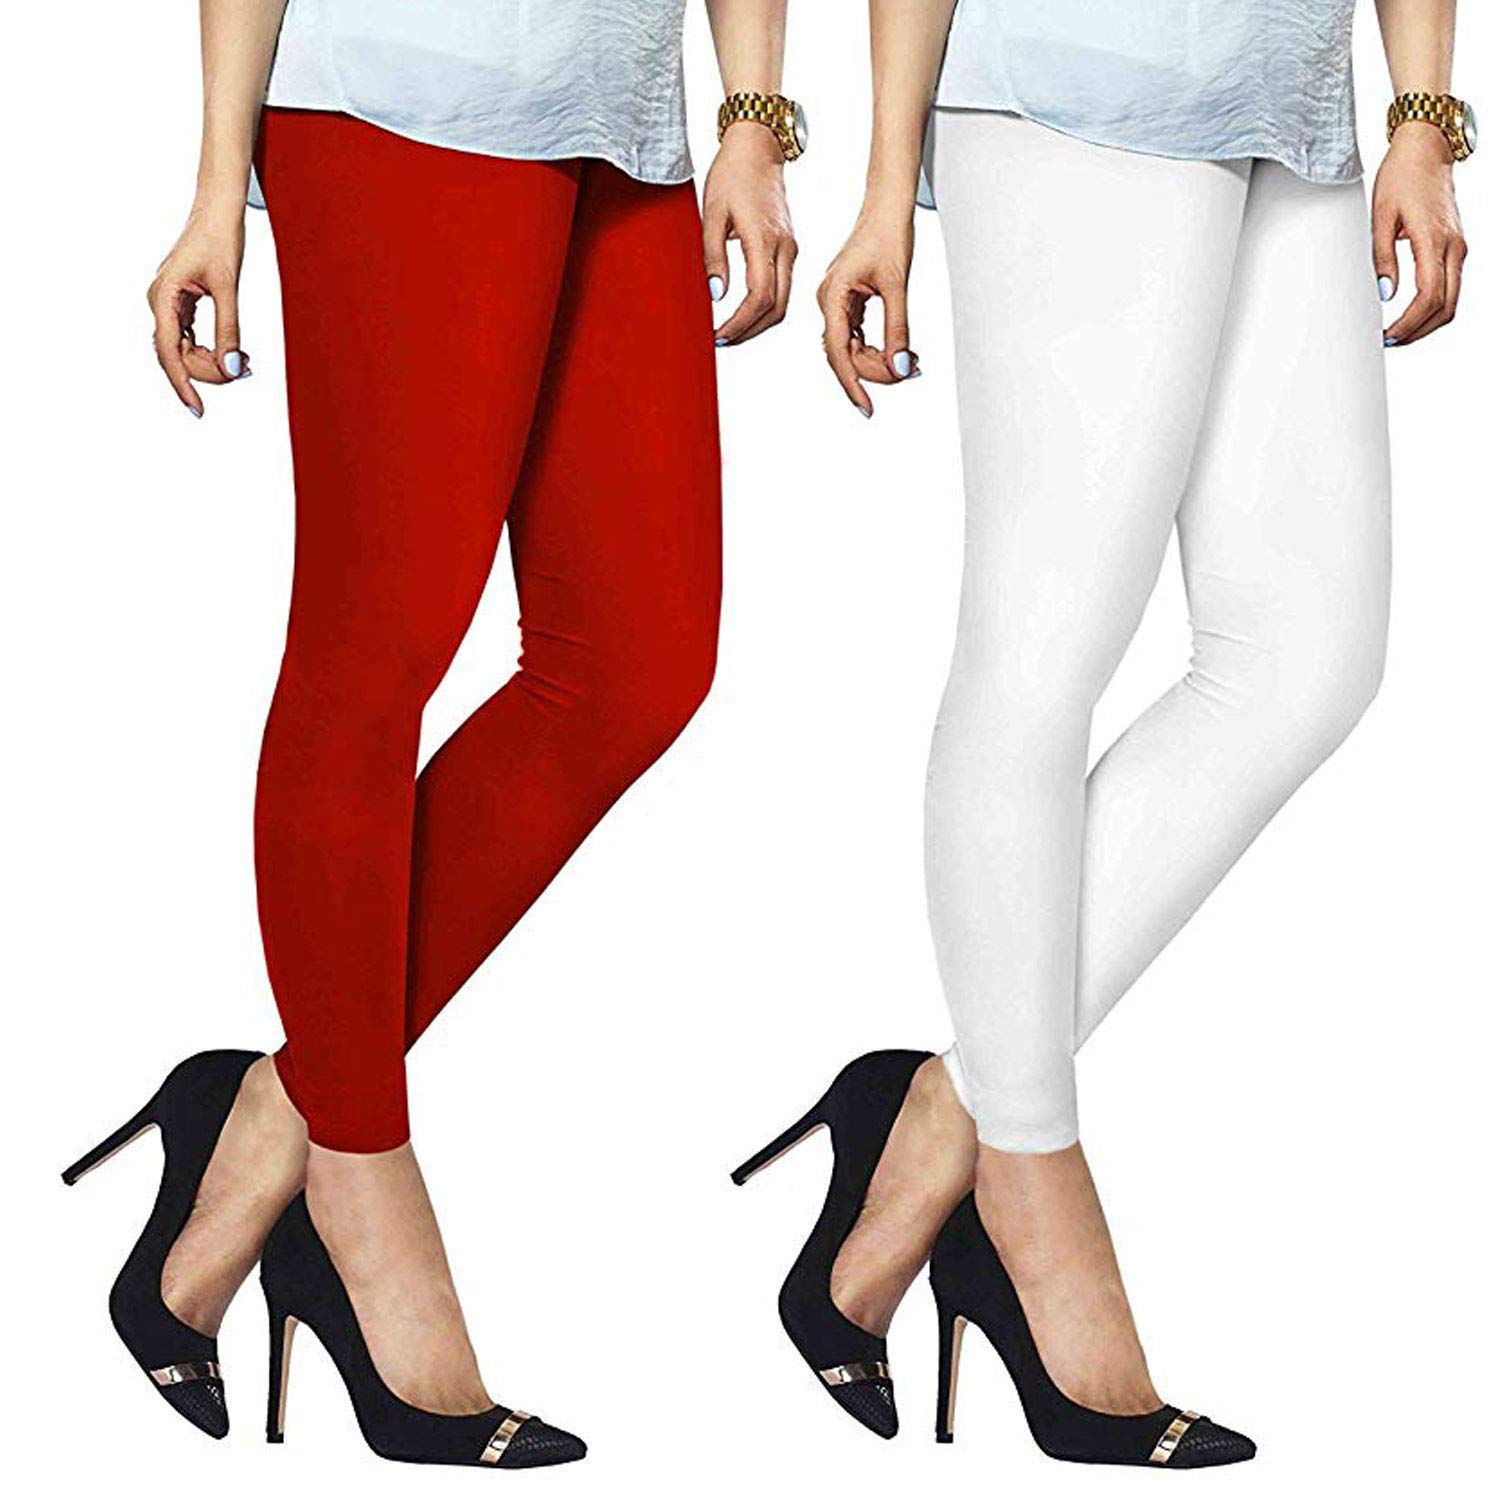 Ardour Ultra Soft Pack of 2 Red & White High Waist Full Length Cotton Lycra Churidar Legging for Women - Free Size.24-32'' inch Waist (Stretchable)